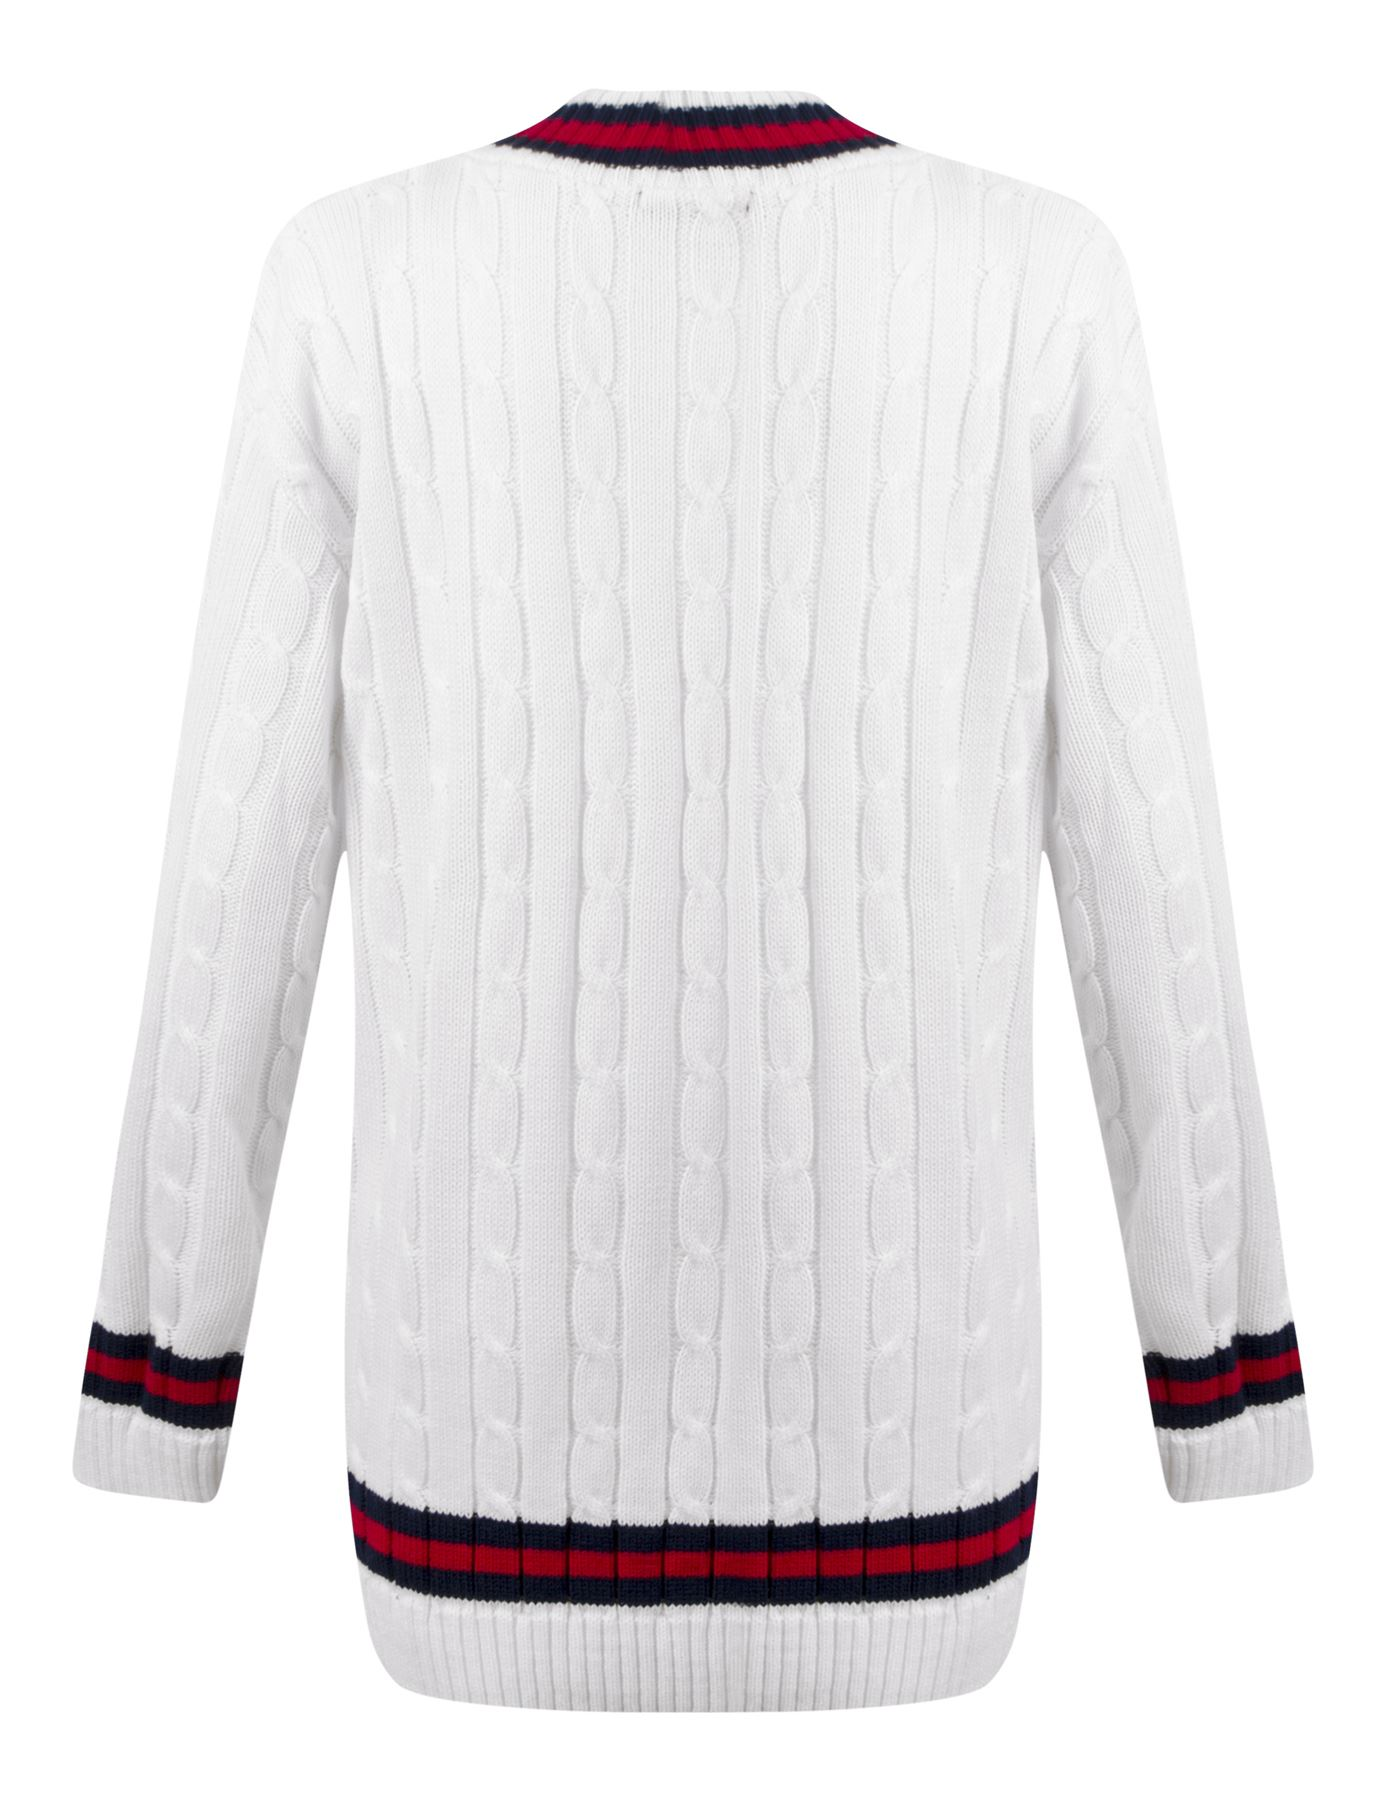 44b658c43e3 Womens Ladies Cable Knit V Neck Long Stretch Onesize Cricket Jumper ...